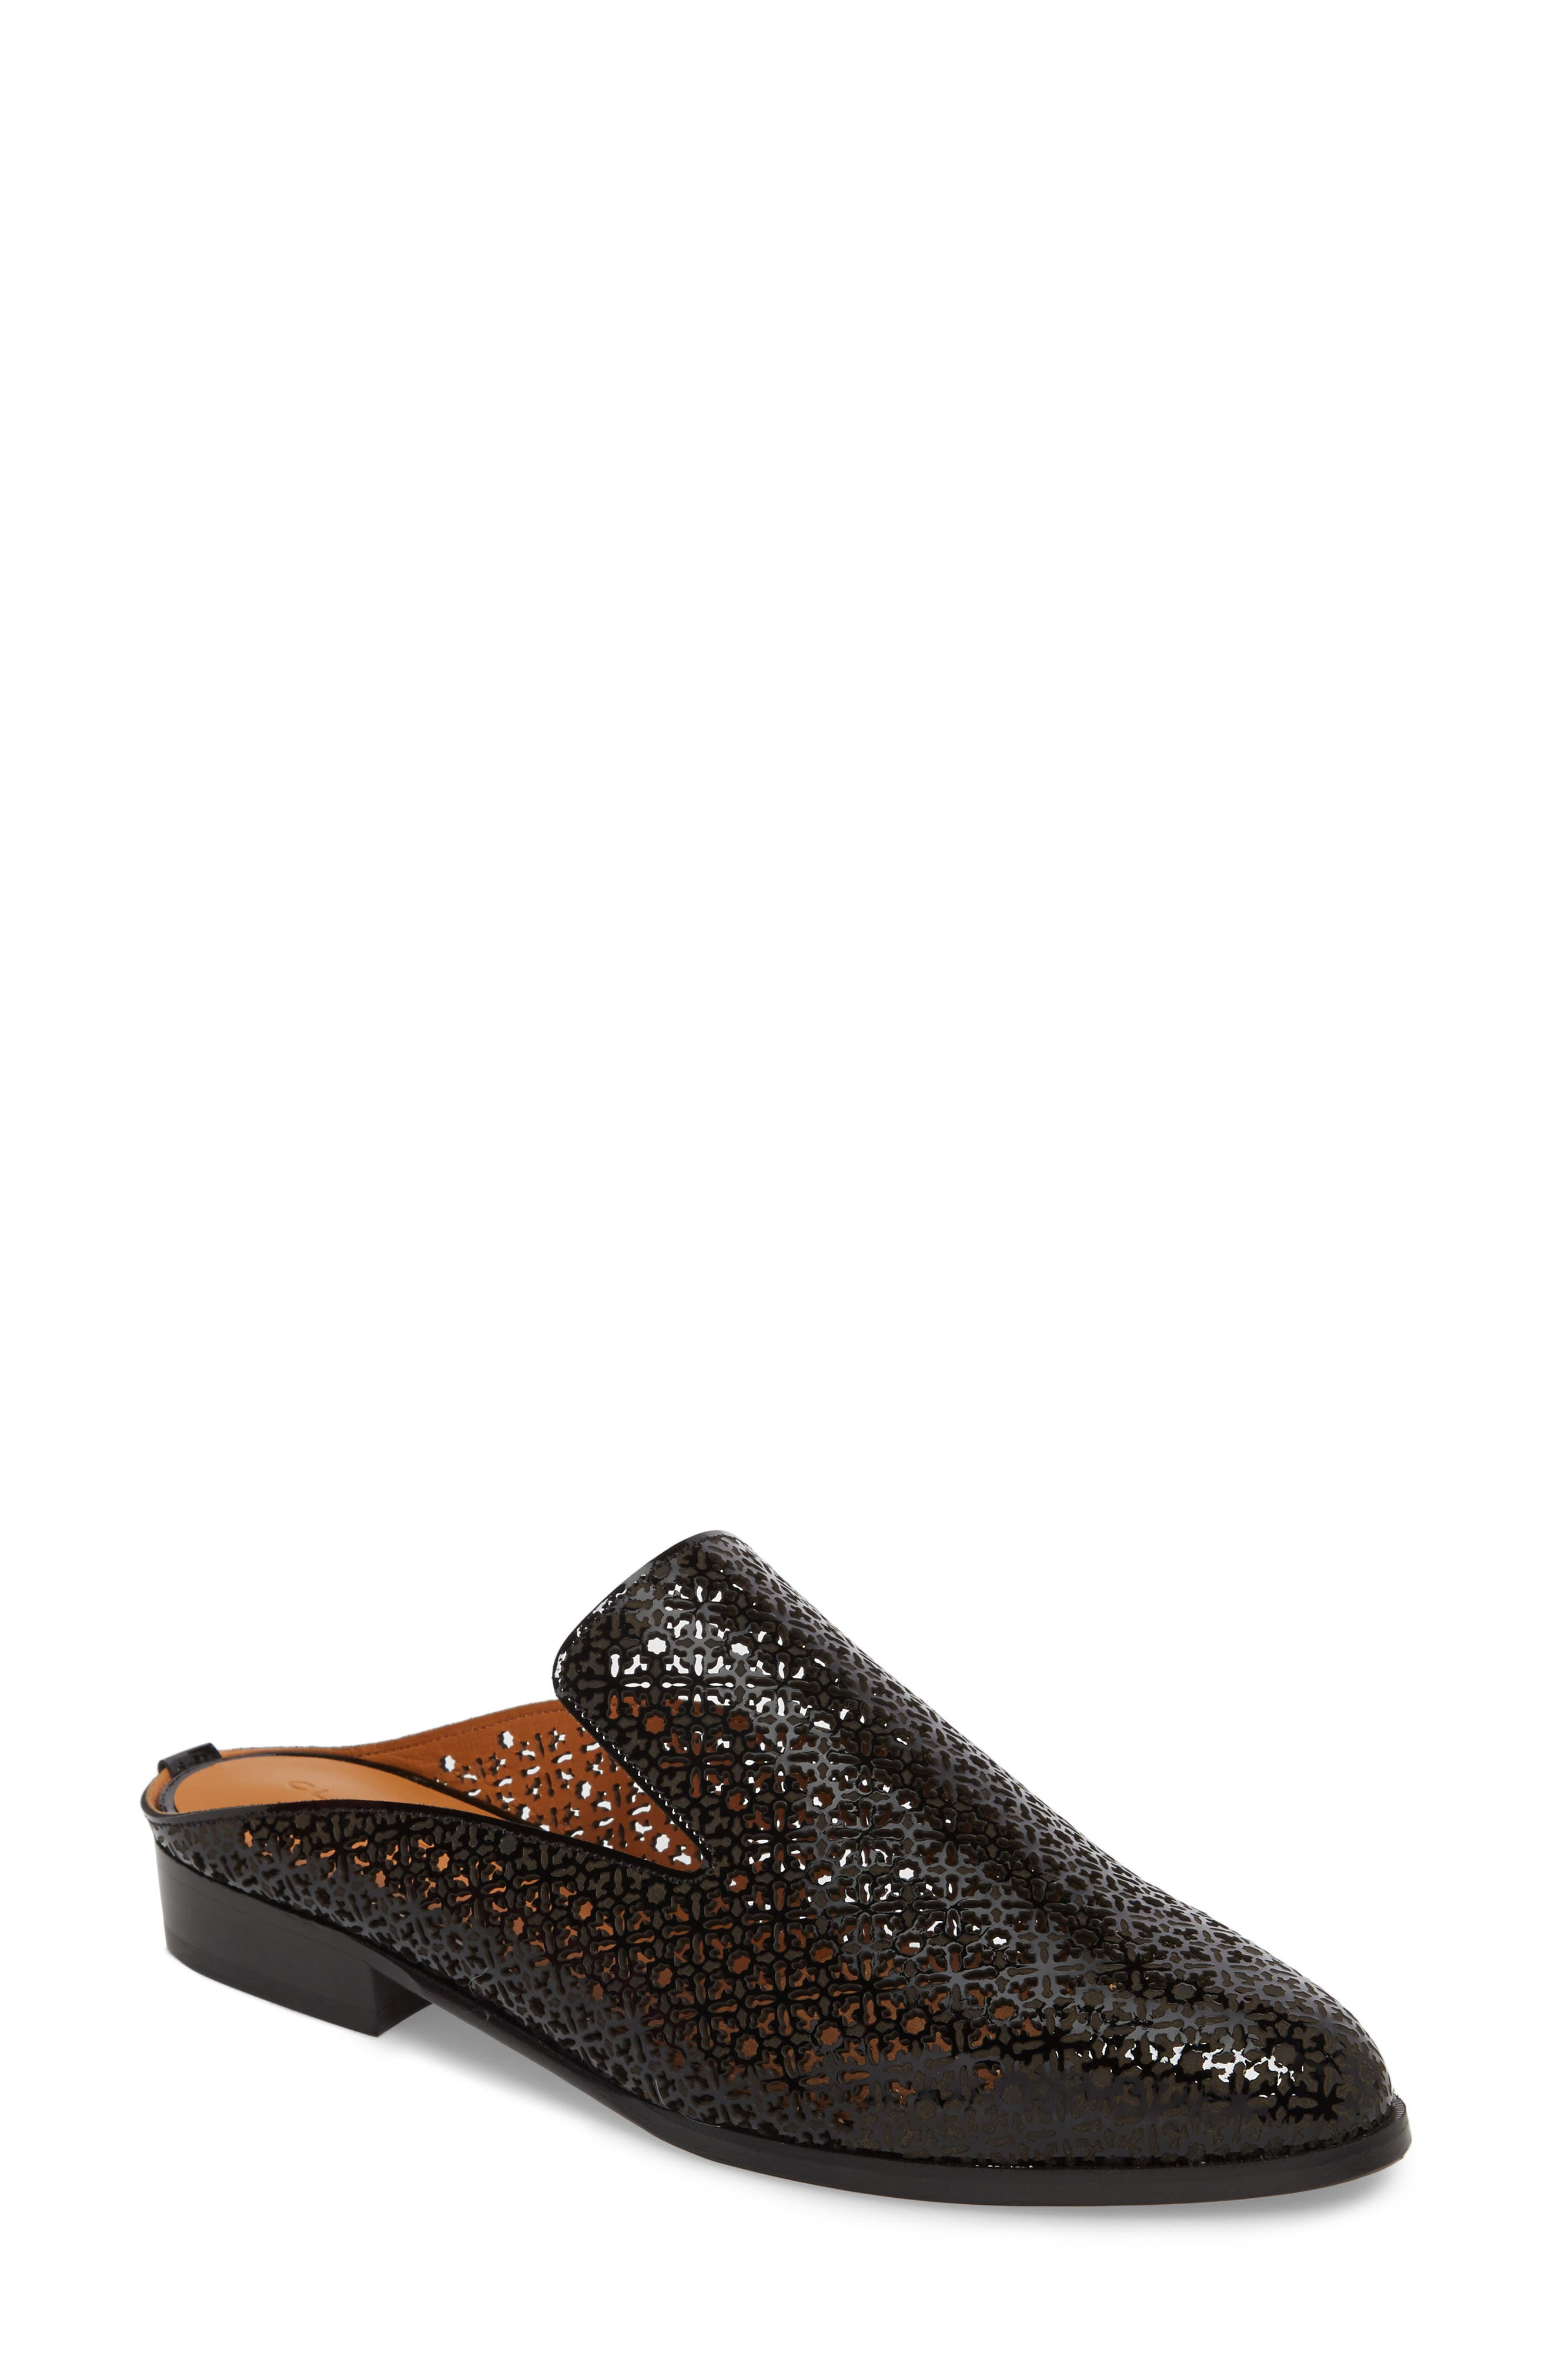 Robert Clergerie Asier Perforated Loafer Mule (Women)